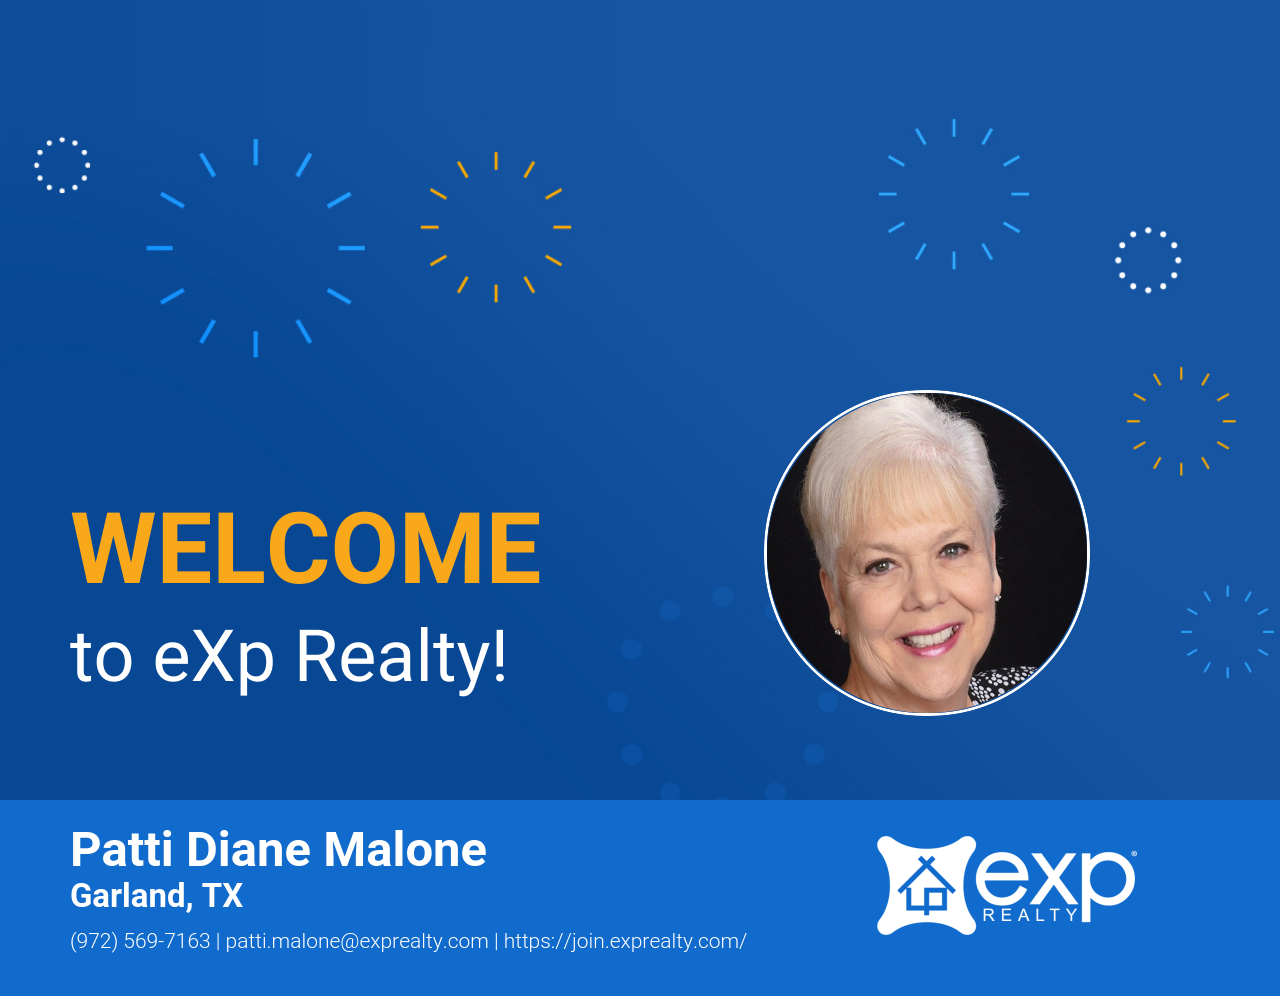 eXp Realty Welcomes Patti Malone!